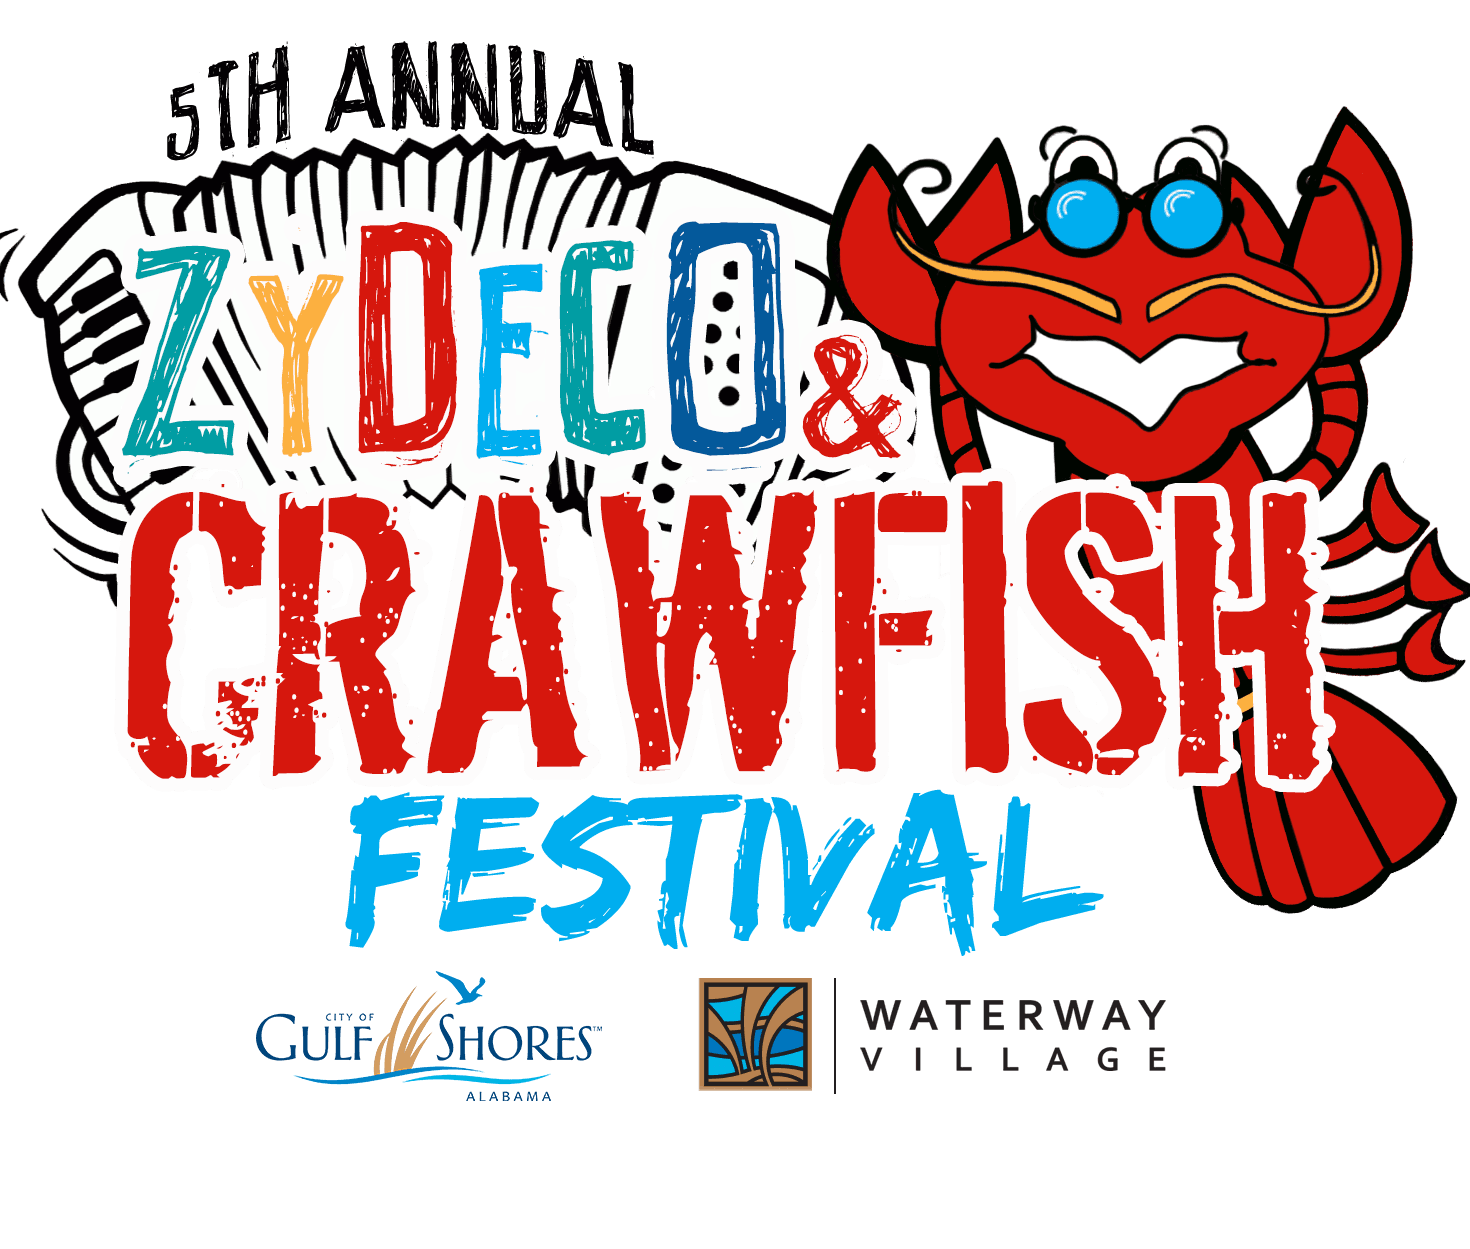 Zydeco Crawfish Festival Logo - 5th Annual